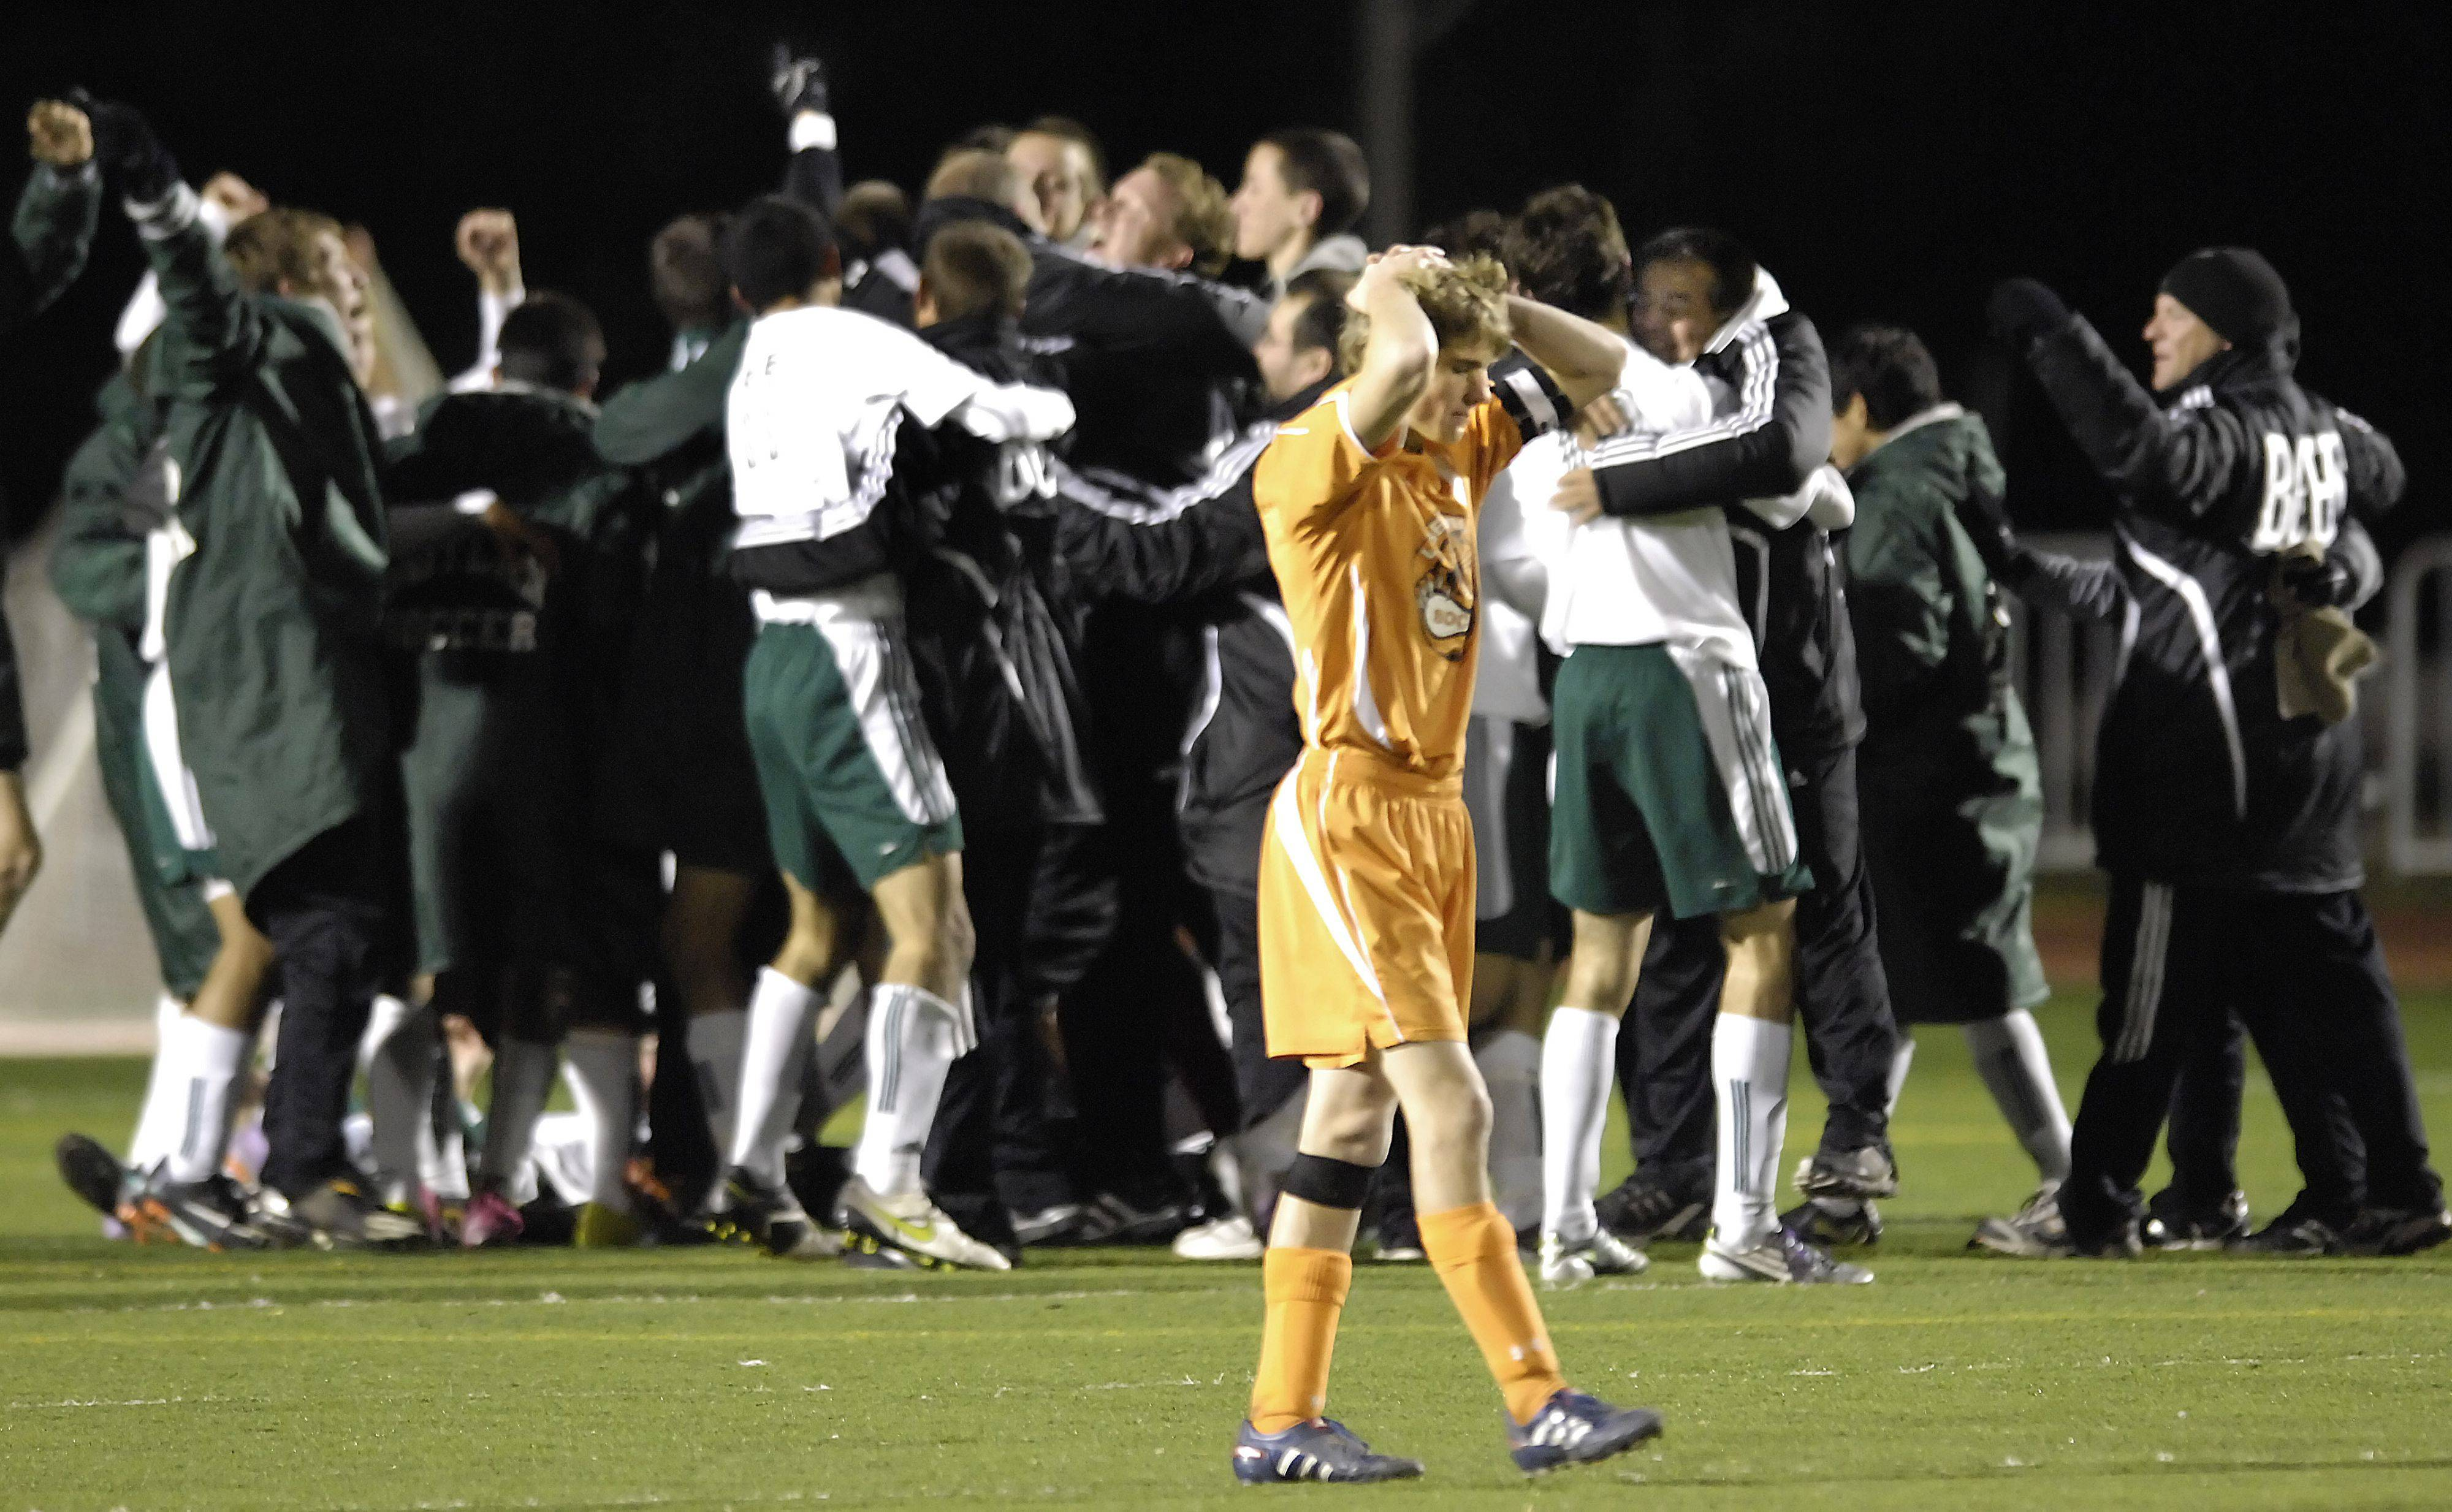 Libertyville's Marshall Hollingsworth walks away with his hands on his head as Rockford Boylan celebrates the state championship in Naperville Saturday.